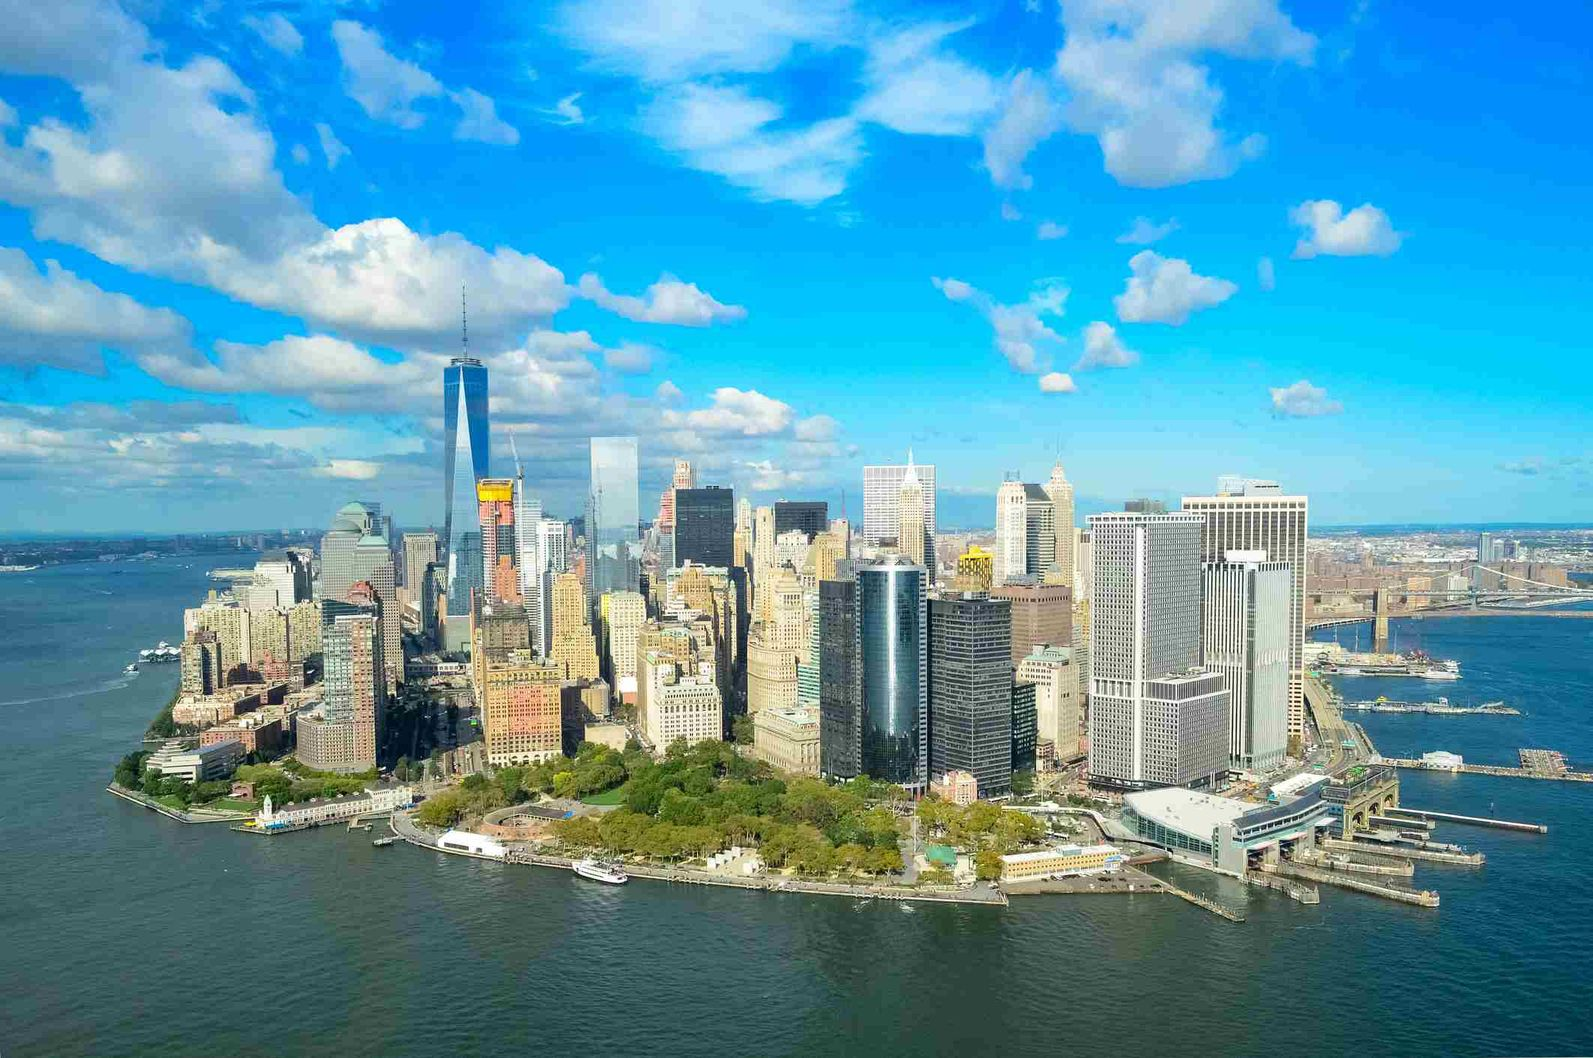 https://img.ianstravels.com/img/united-states/the-top-12-things-to-do-in-battery-park-city-7.jpg